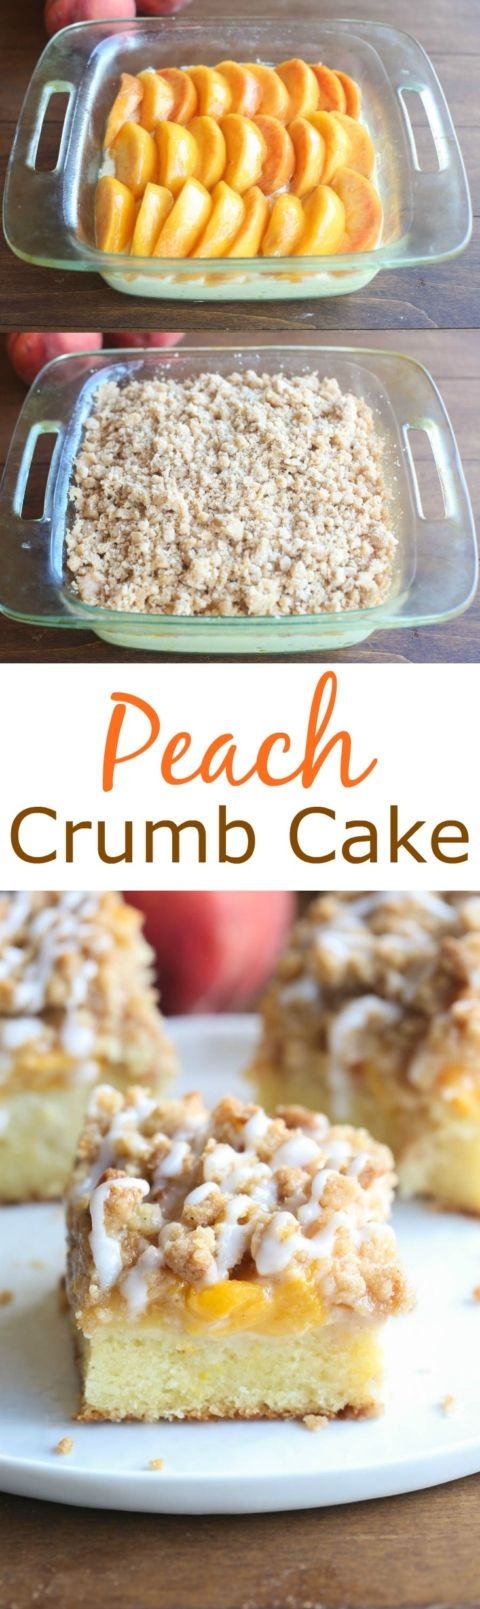 Peach Crumb Cake - a soft and delicious cake layered with fresh peaches and a…